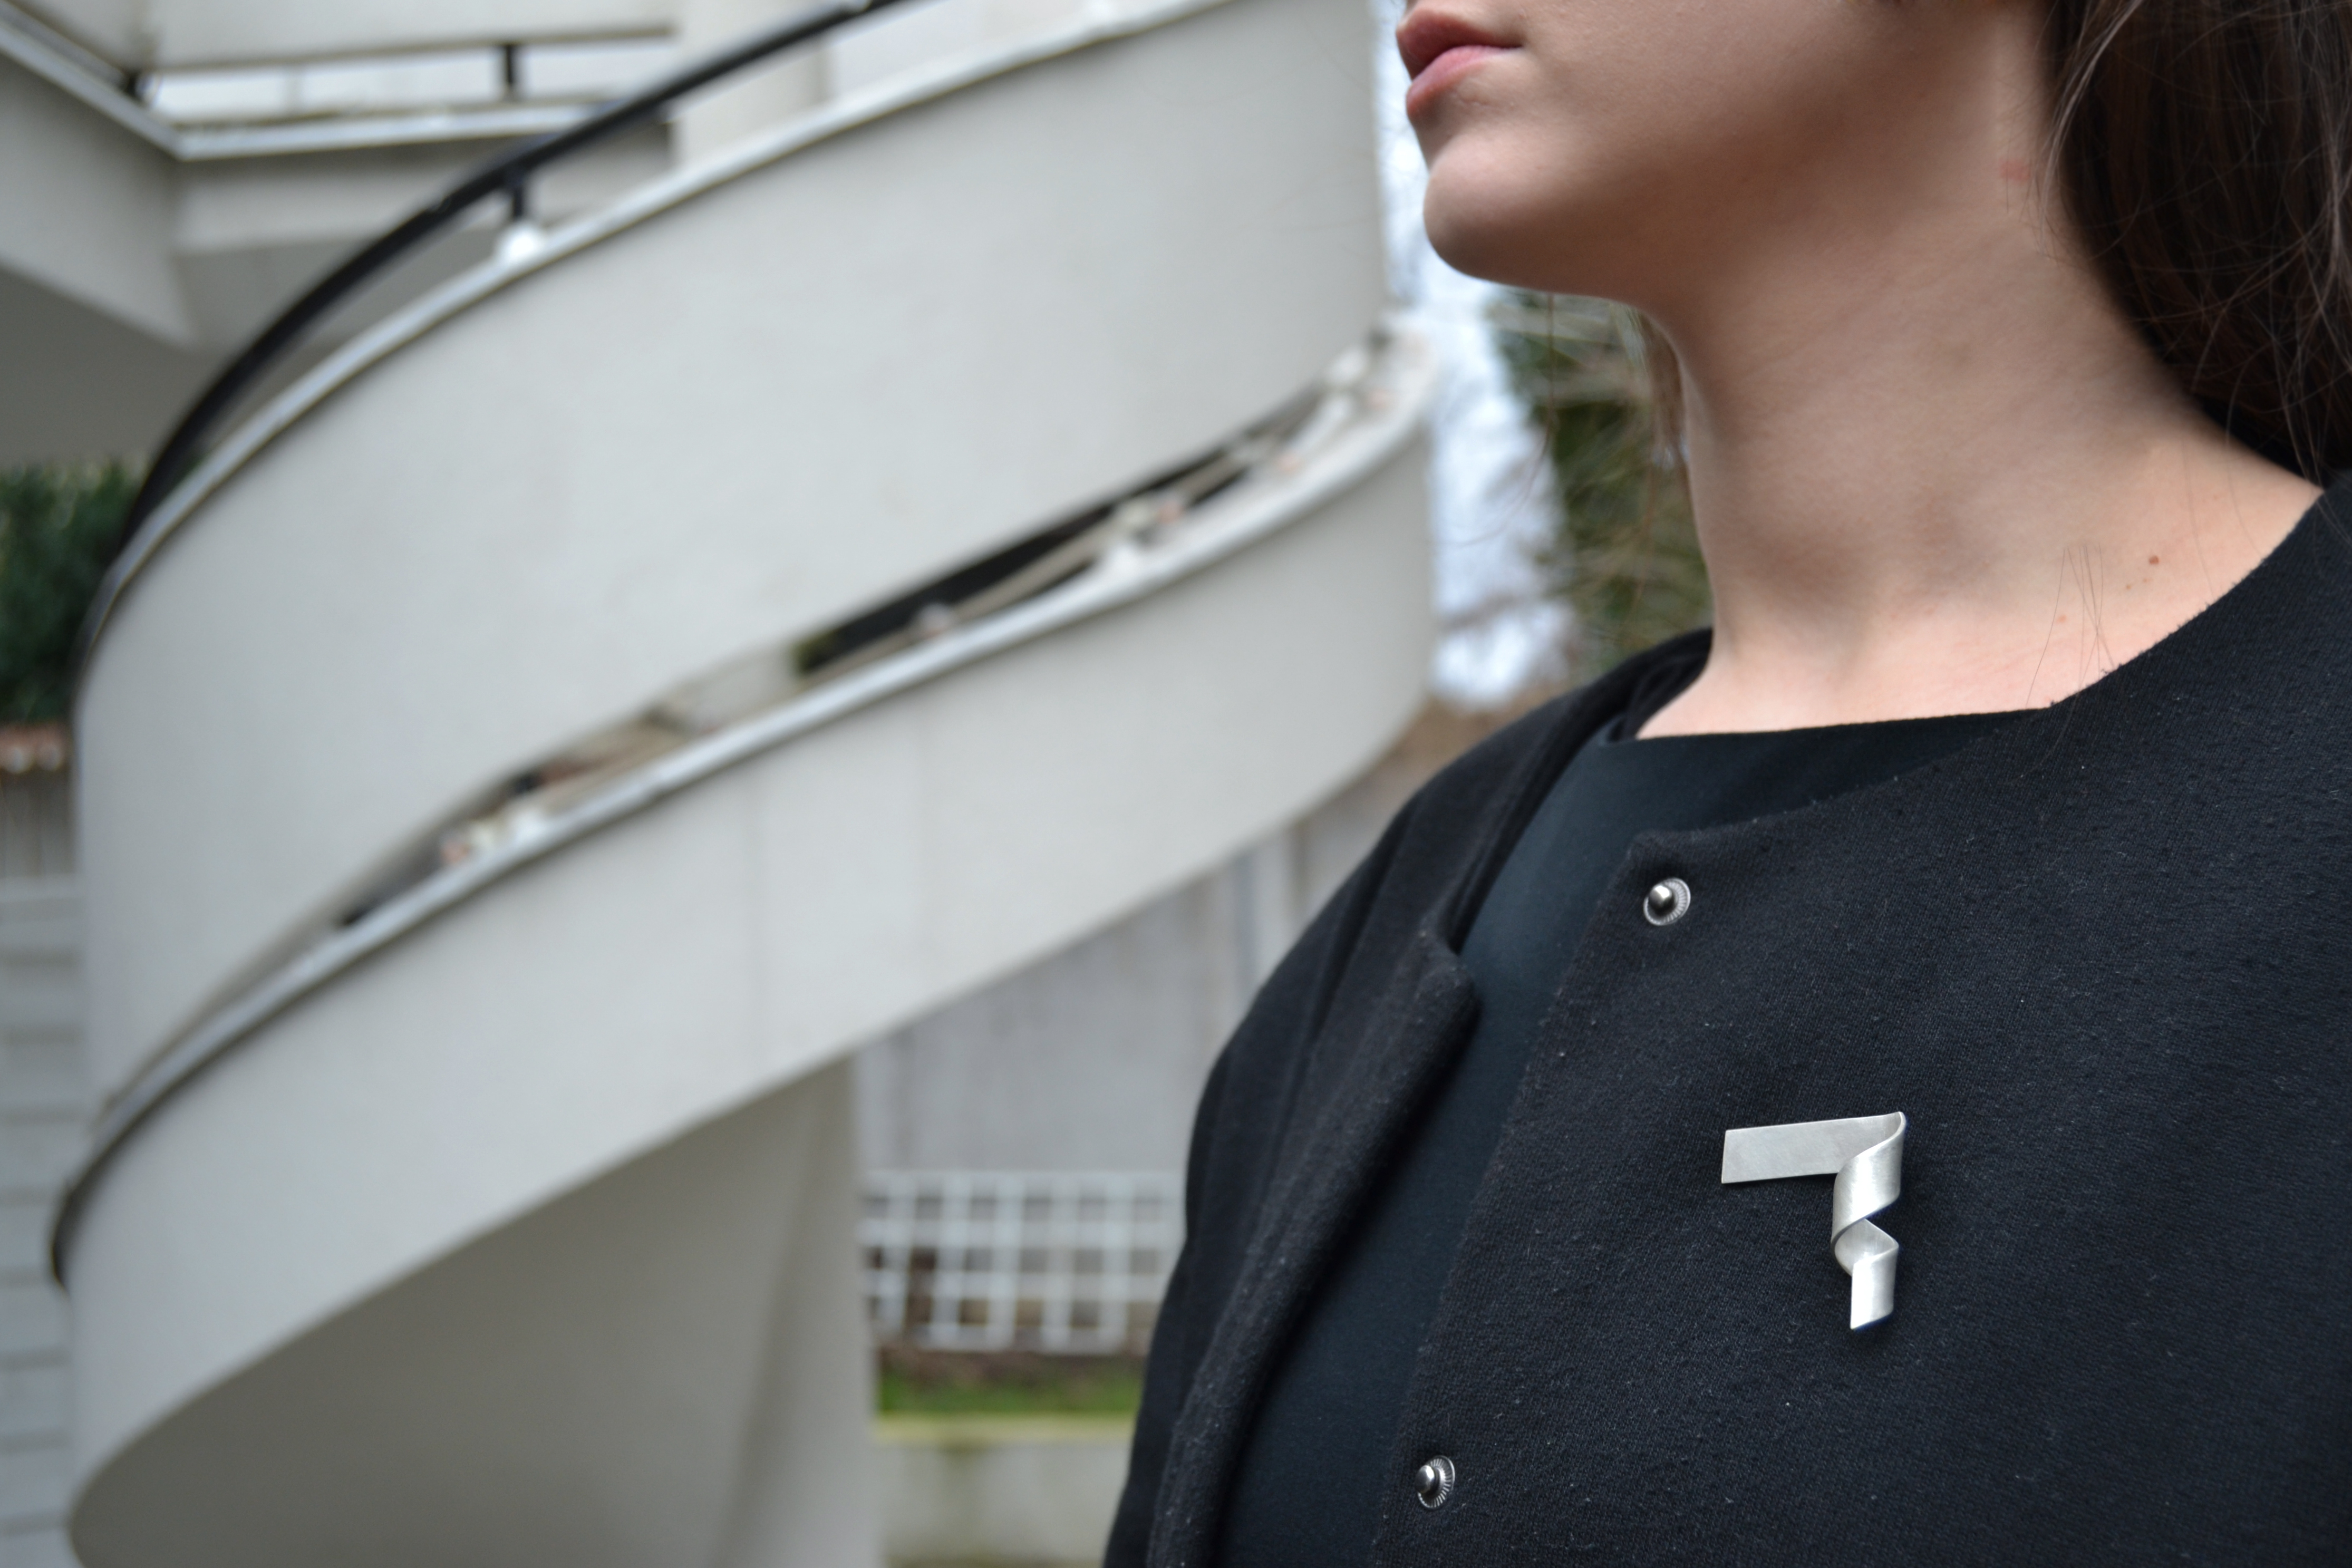 Artist pays homage to Warsaw districts with striking silver jewellery – The First News 4